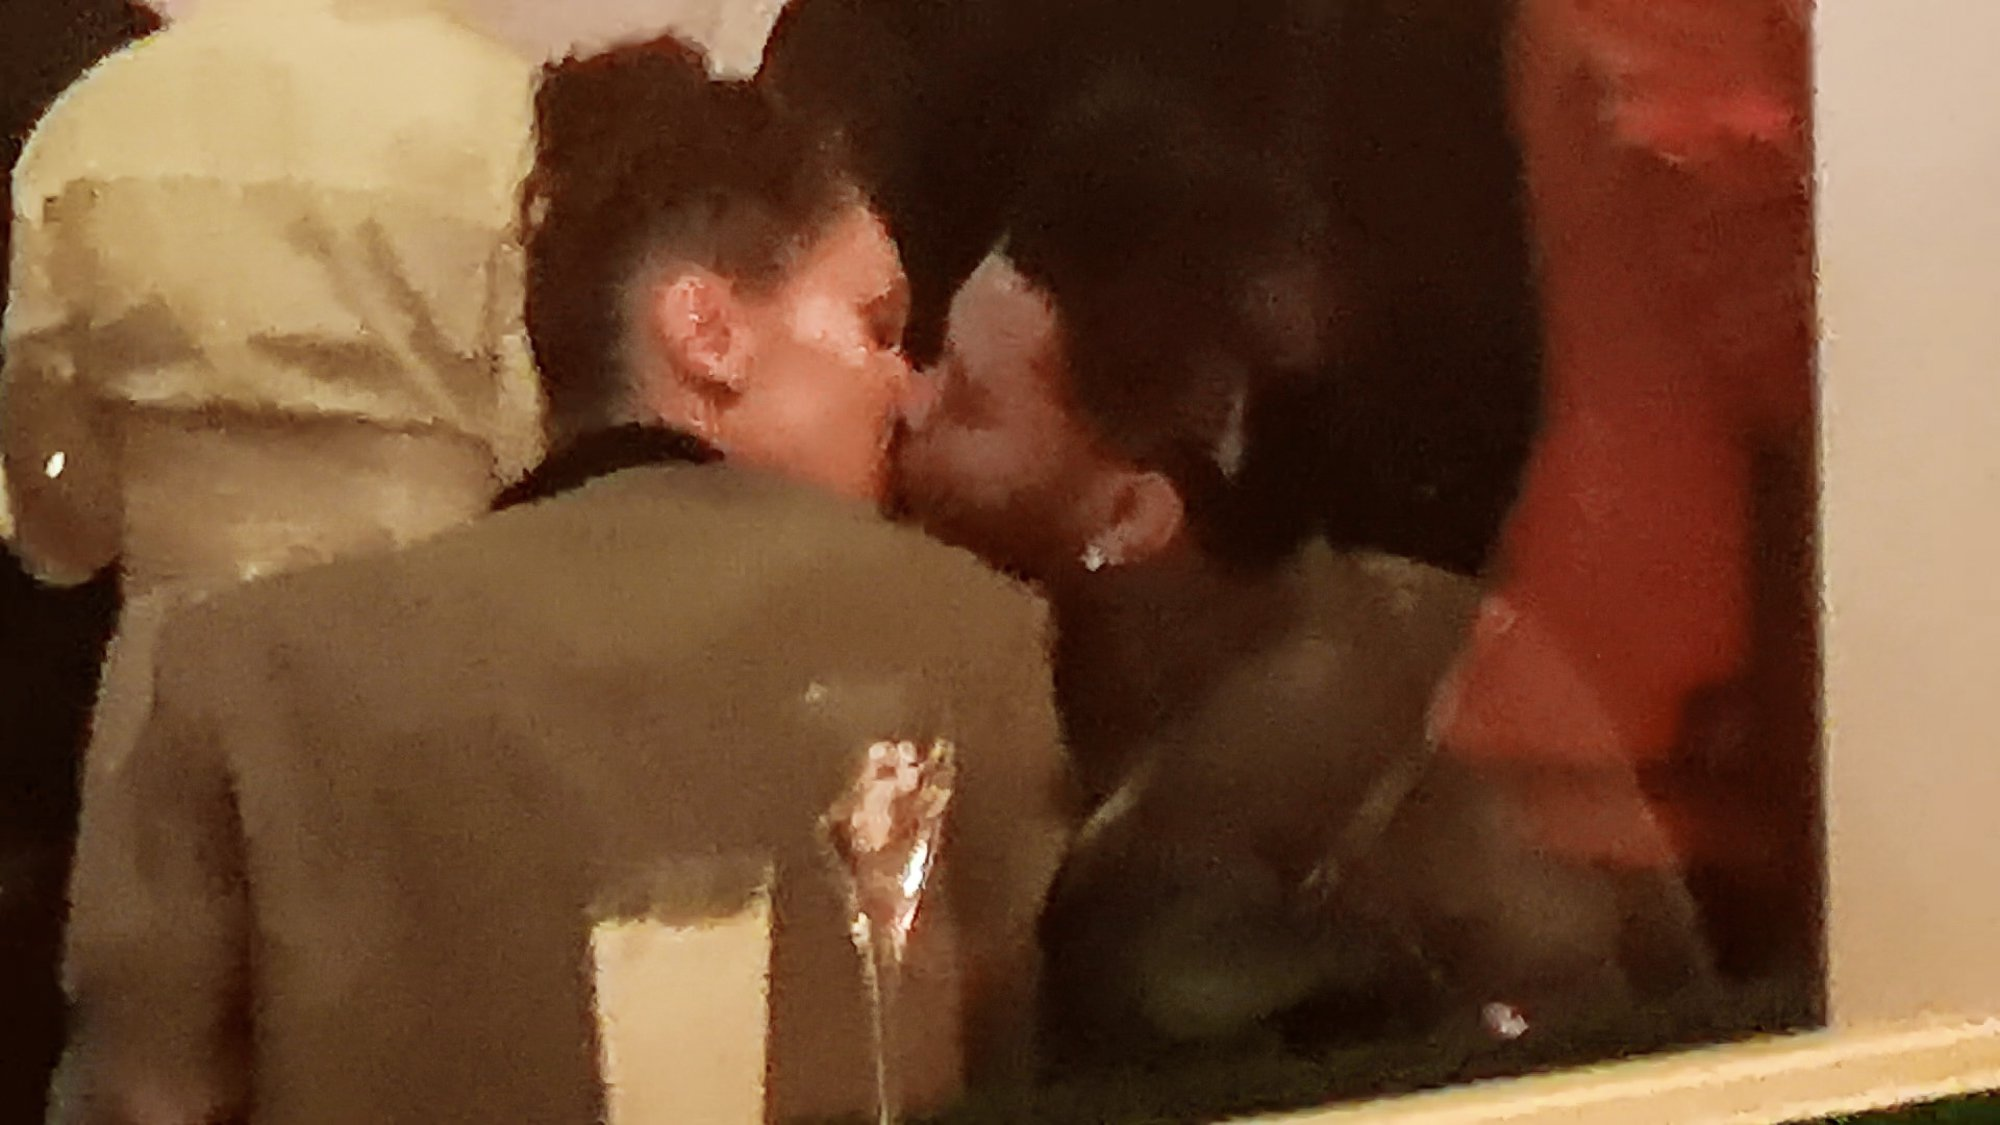 Bella Hadid and The Weeknd reignite their passion with a kiss at Cannes Film Fesitval 2018